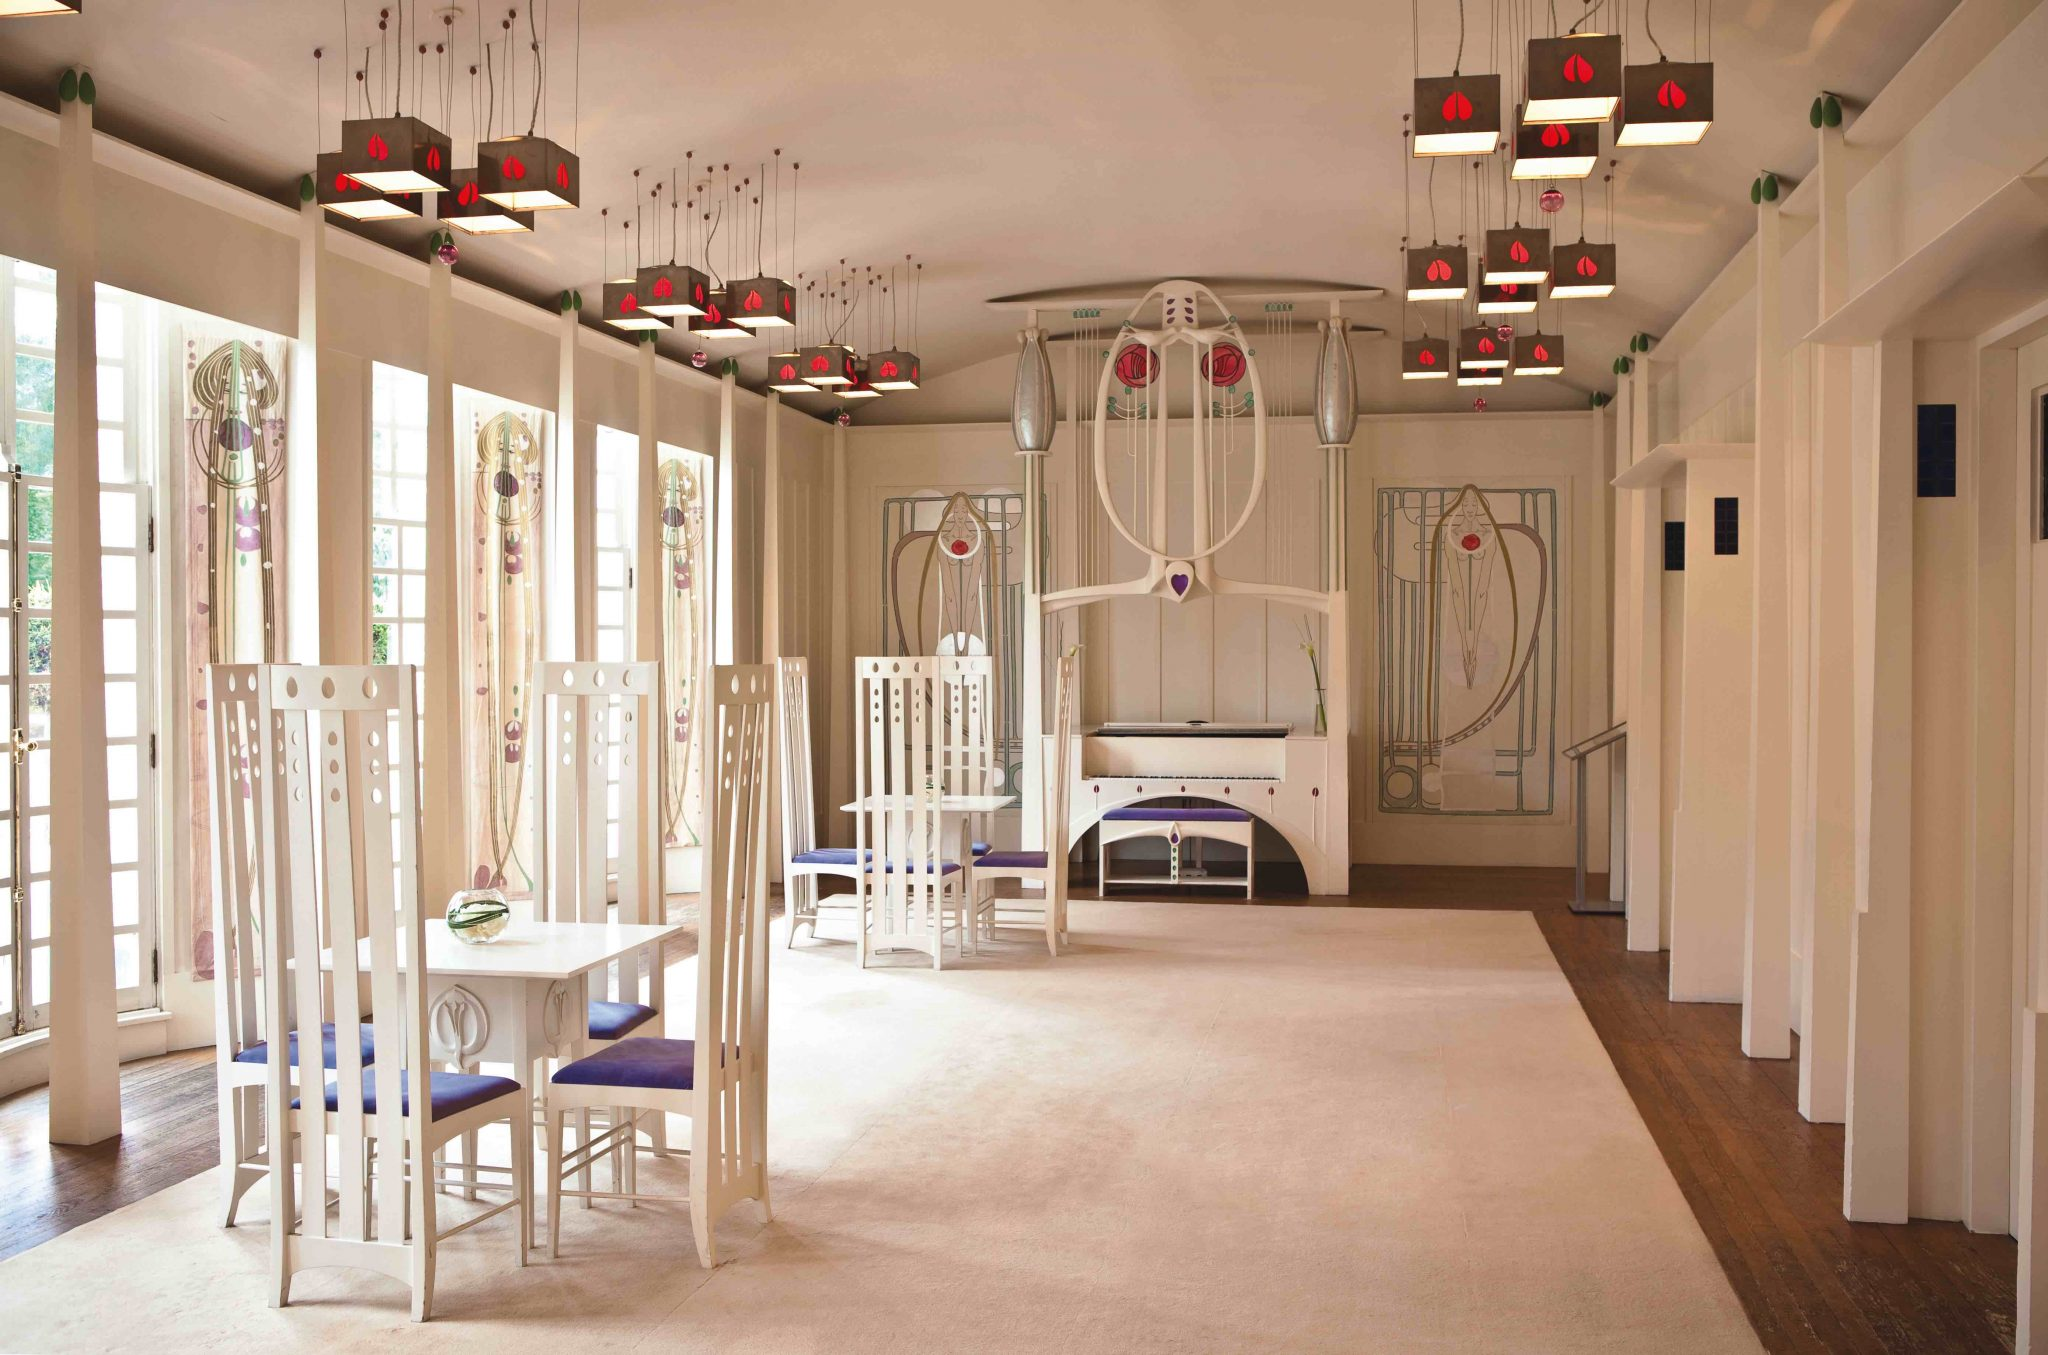 House for an art lover was designed in 1901 by charles rennie mackintosh